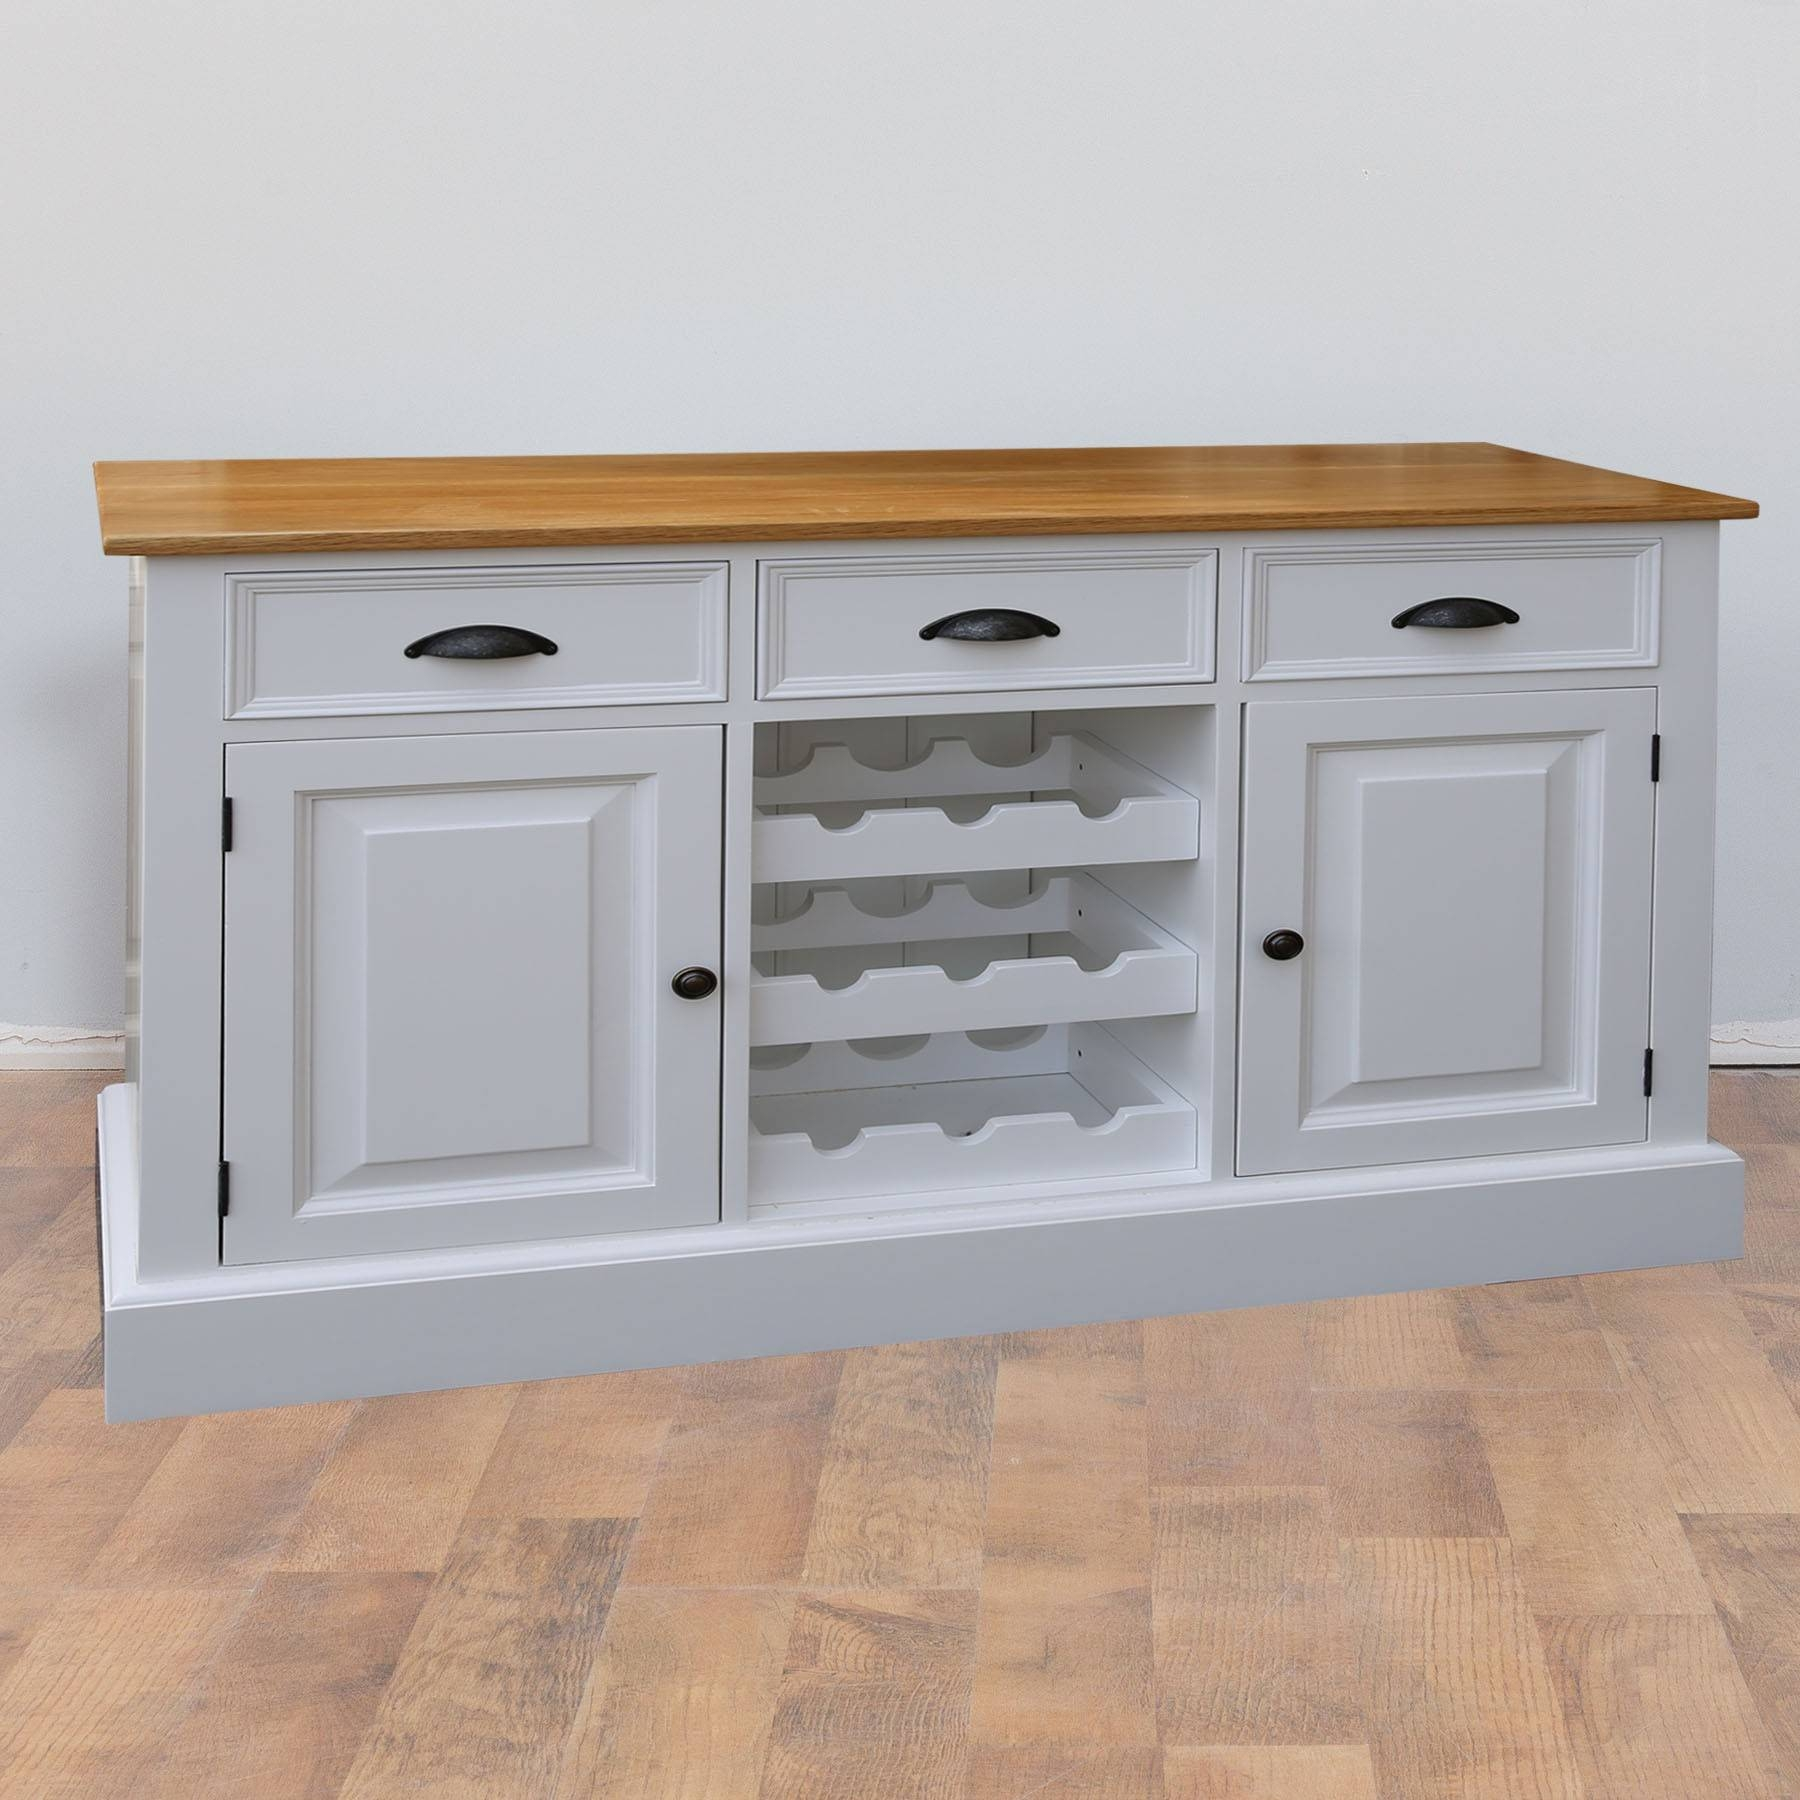 Oak Sideboards With Wine Rack | Mpfmpf Almirah, Beds for White Sideboards With Wine Rack (Image 10 of 30)